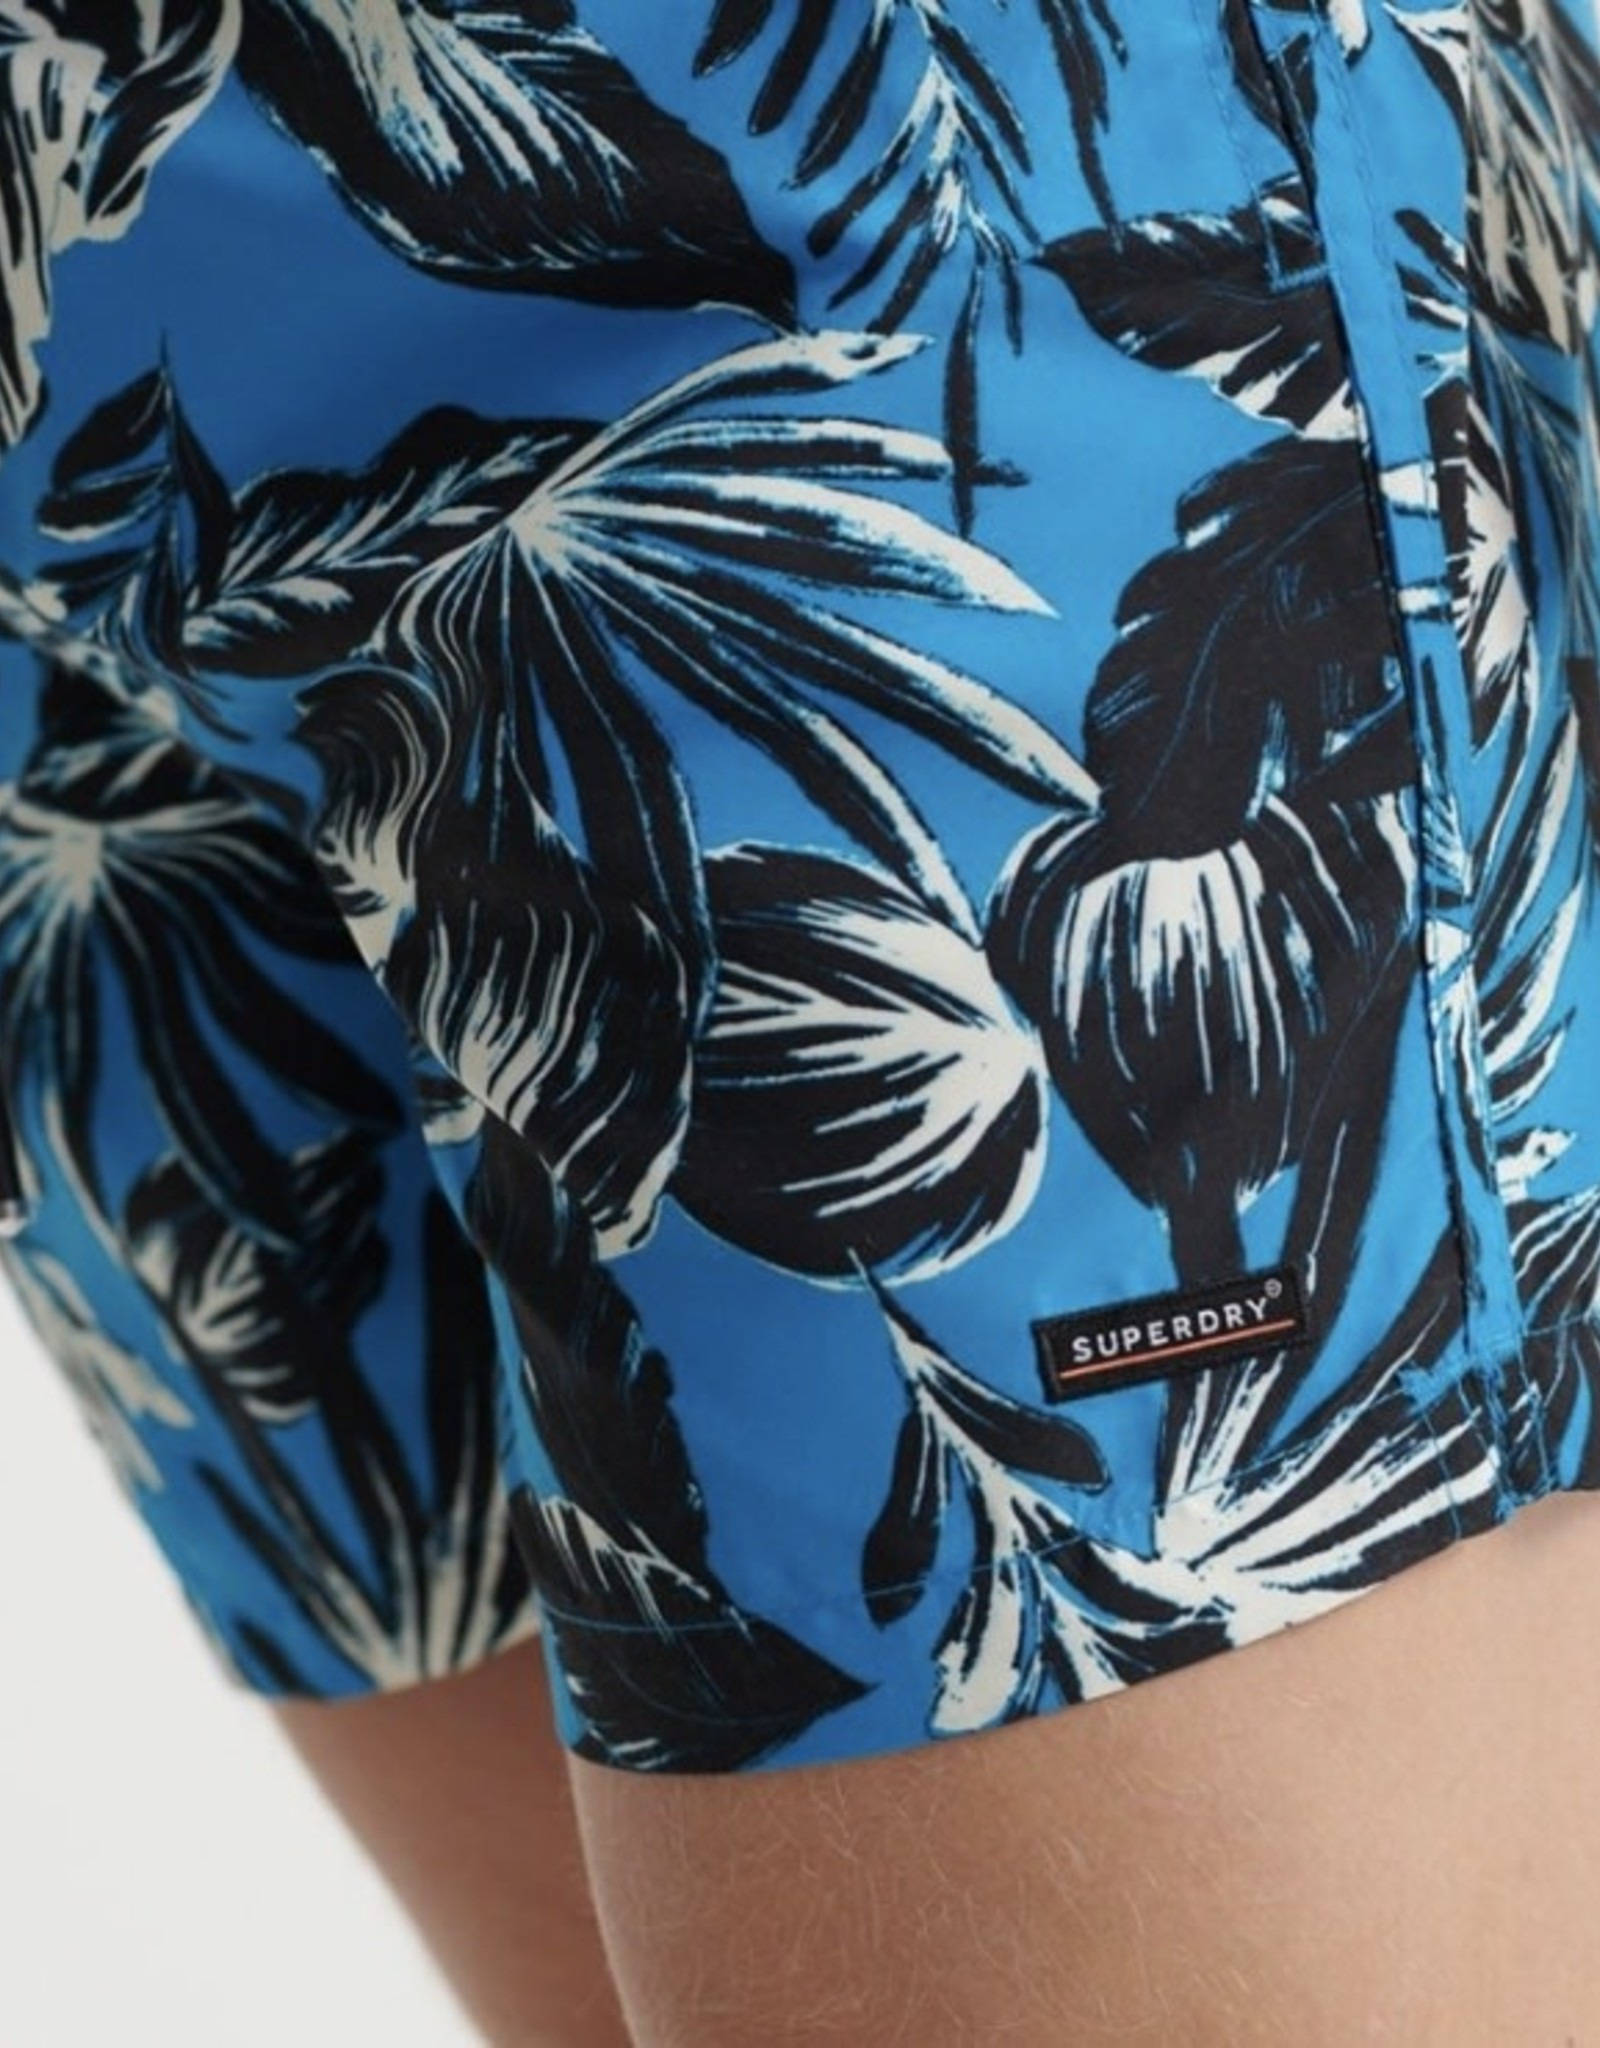 Superdry SD HWN Swim Short Superdry